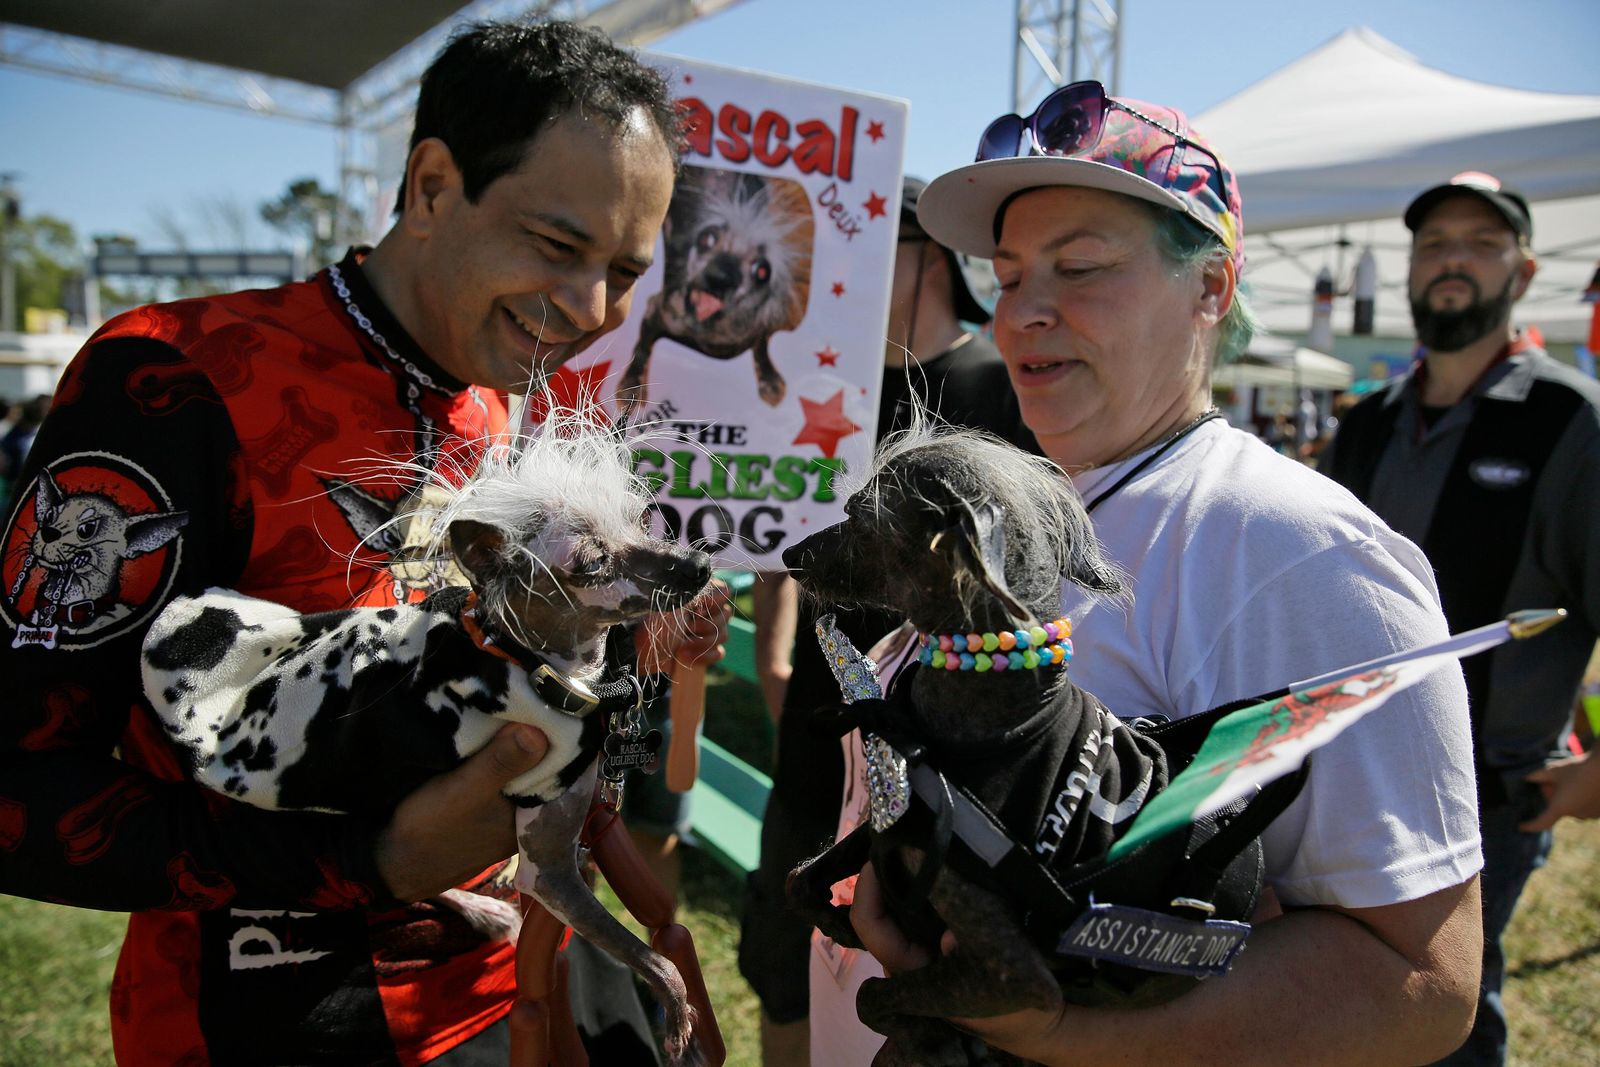 Rascal, left, a Chinese Crest, held by Dane Andrew of Sunnyvale, Calif., meets Chase, right, a Chinese Crested Harke, held by Storm Shayler, right, of Britain, before the start of the World's Ugliest Dog Contest at the Sonoma-Marin Fair Friday, June 23, 2017, in Petaluma, Calif. (AP Photo/Eric Risberg)